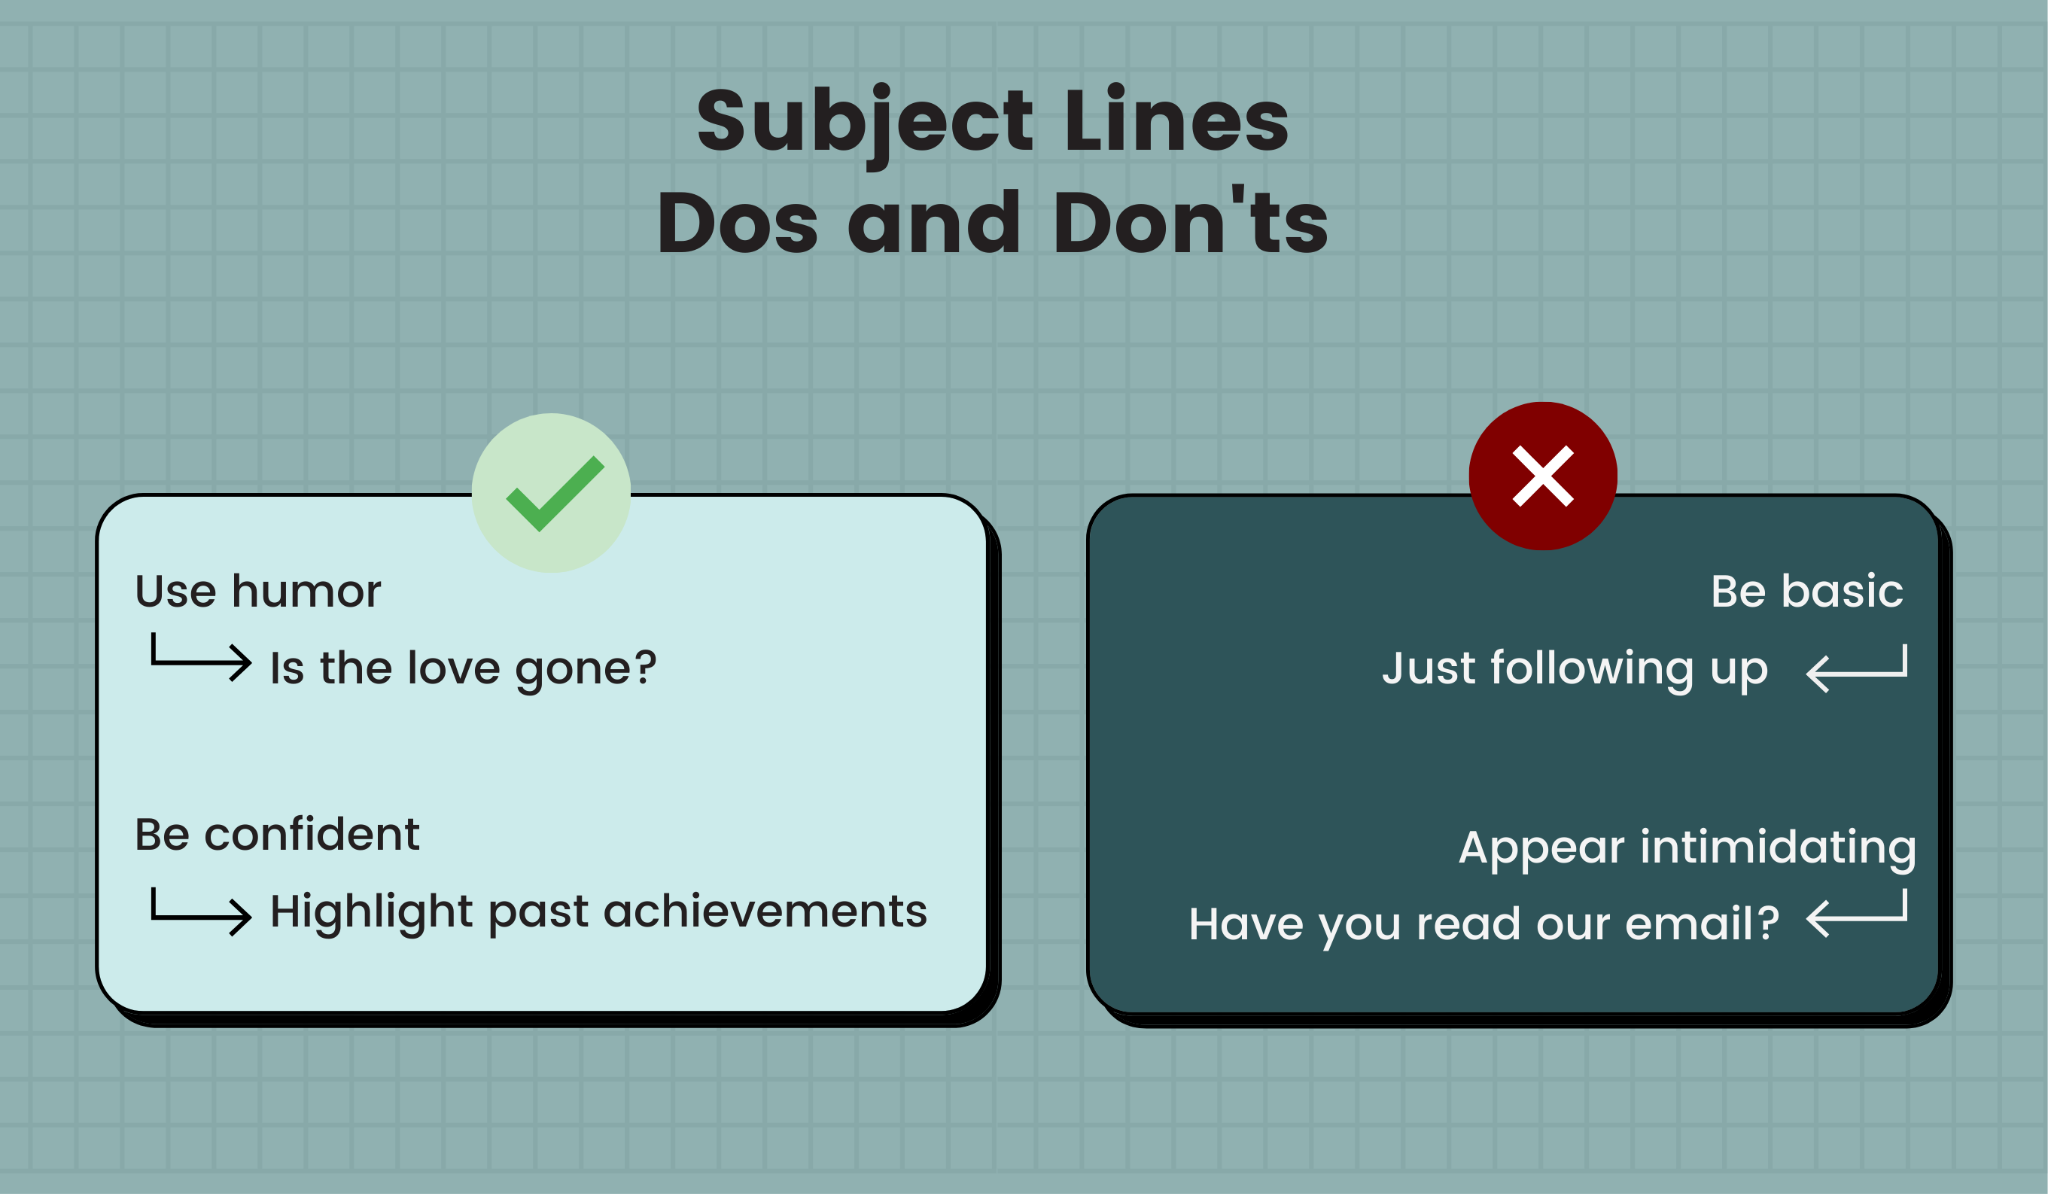 Subject lines dos and don'ts for follow up emails